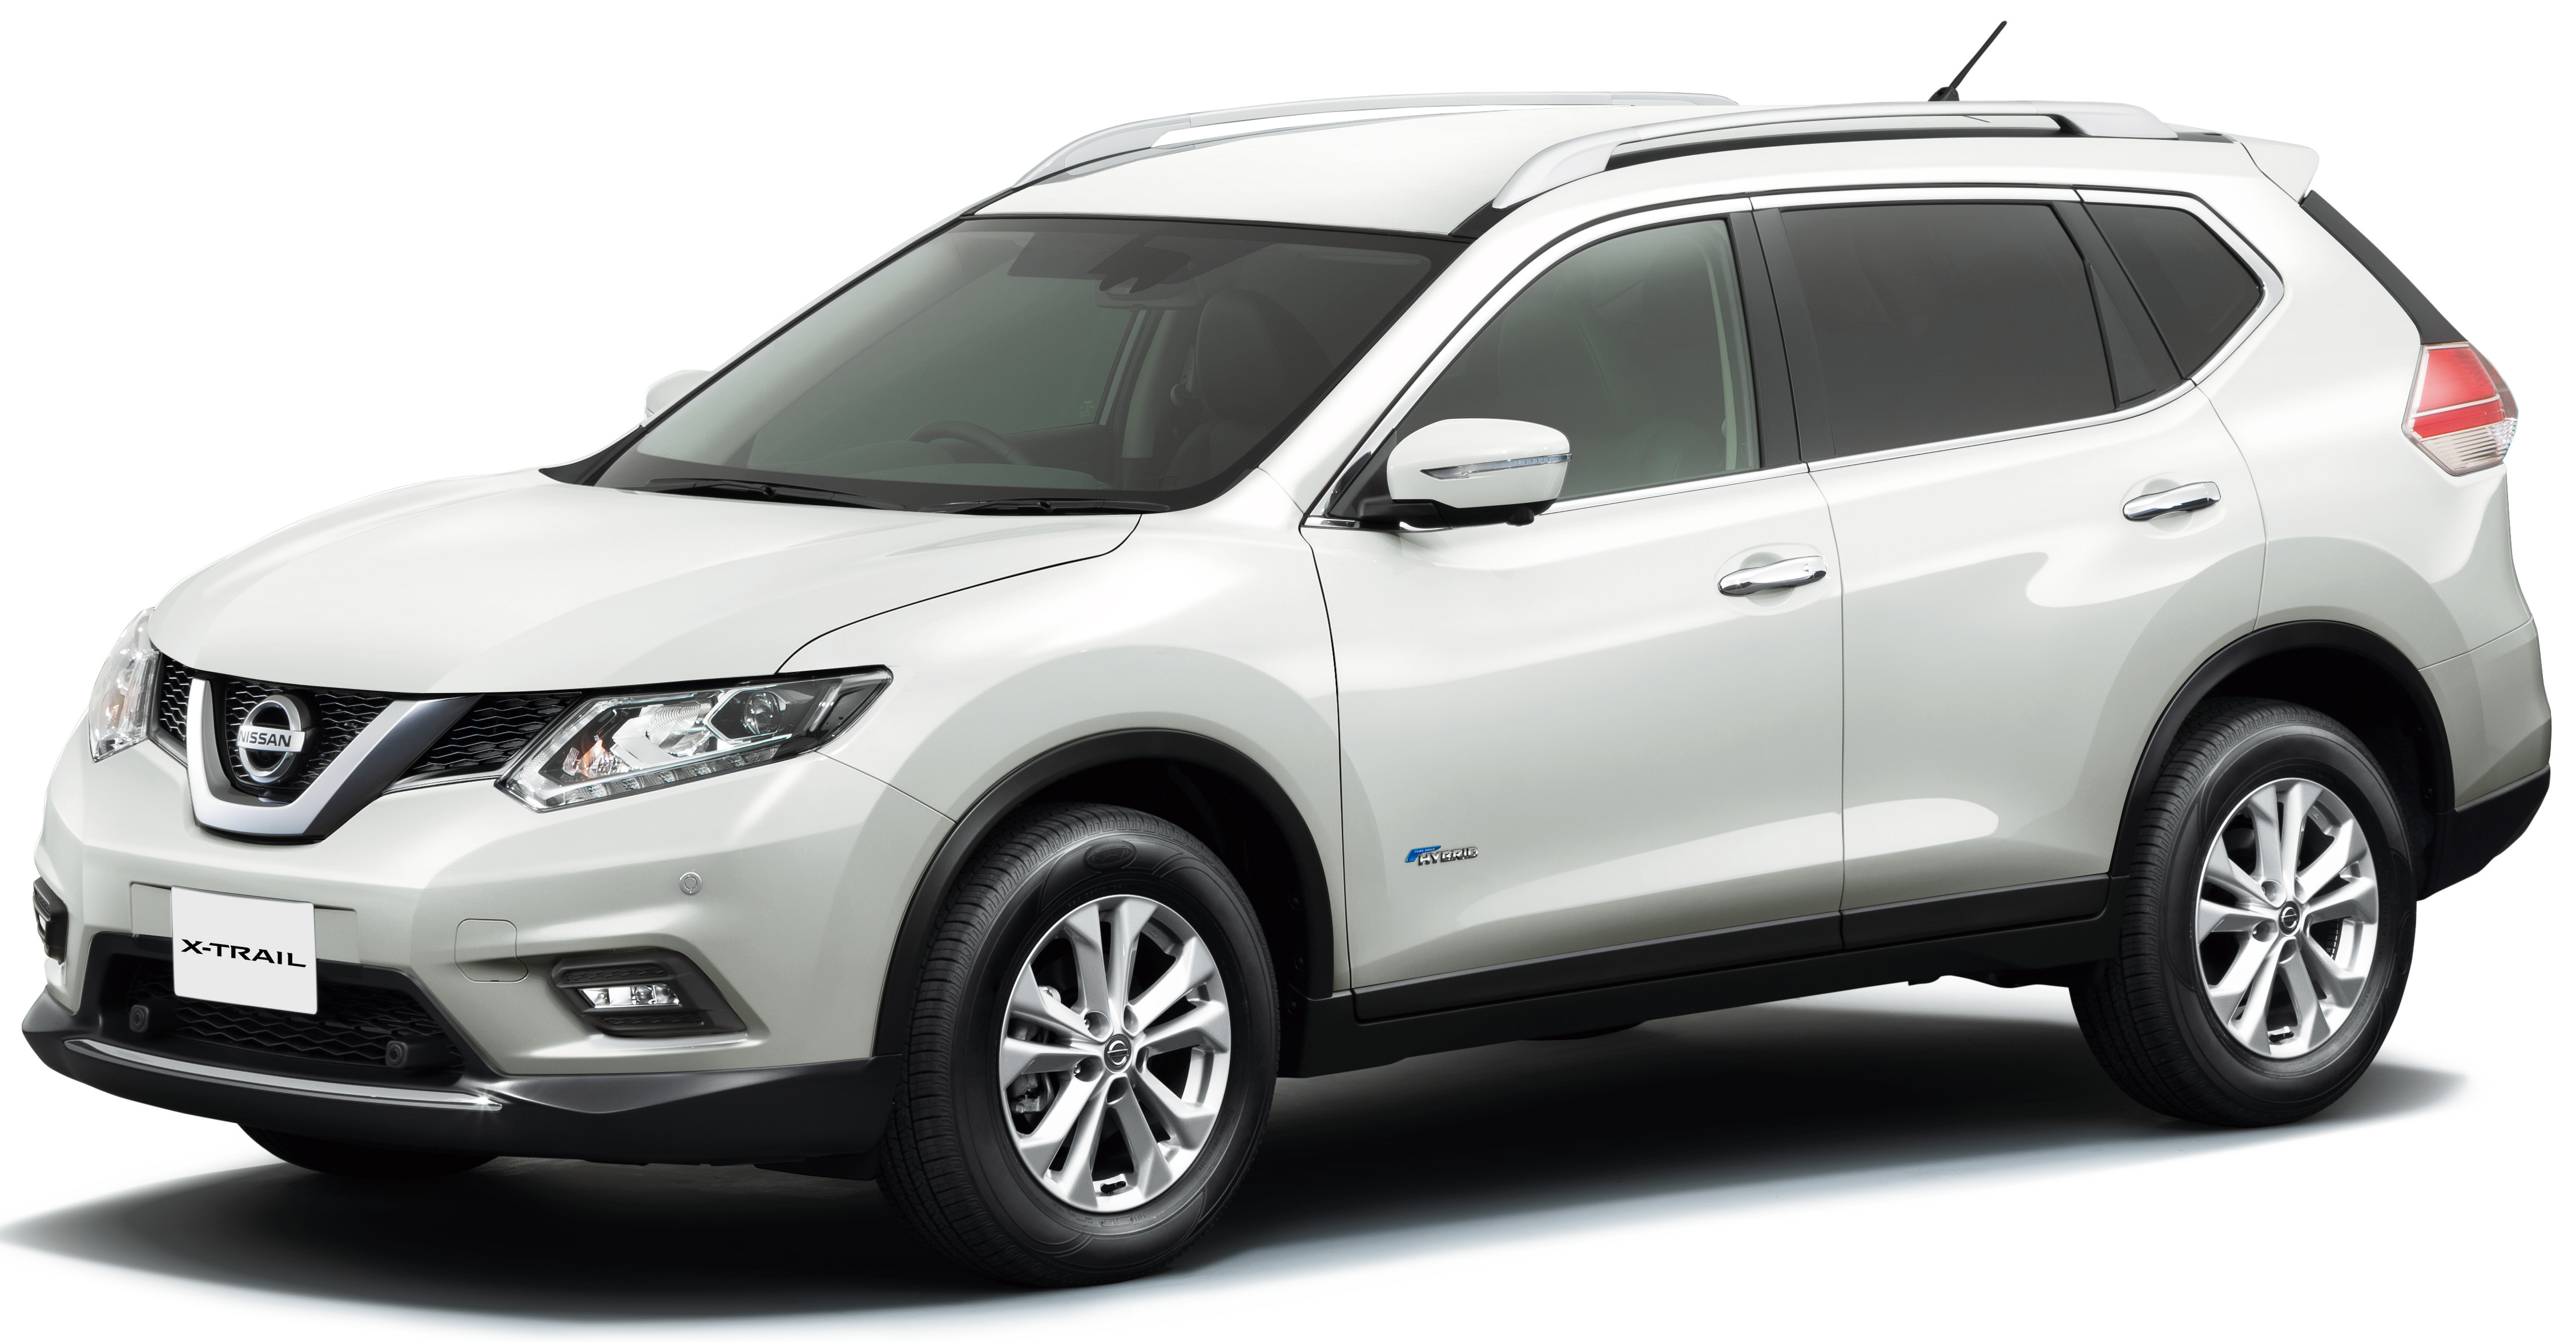 nissan x trail hybrid for japan 2 0 litre 20 6 km l. Black Bedroom Furniture Sets. Home Design Ideas